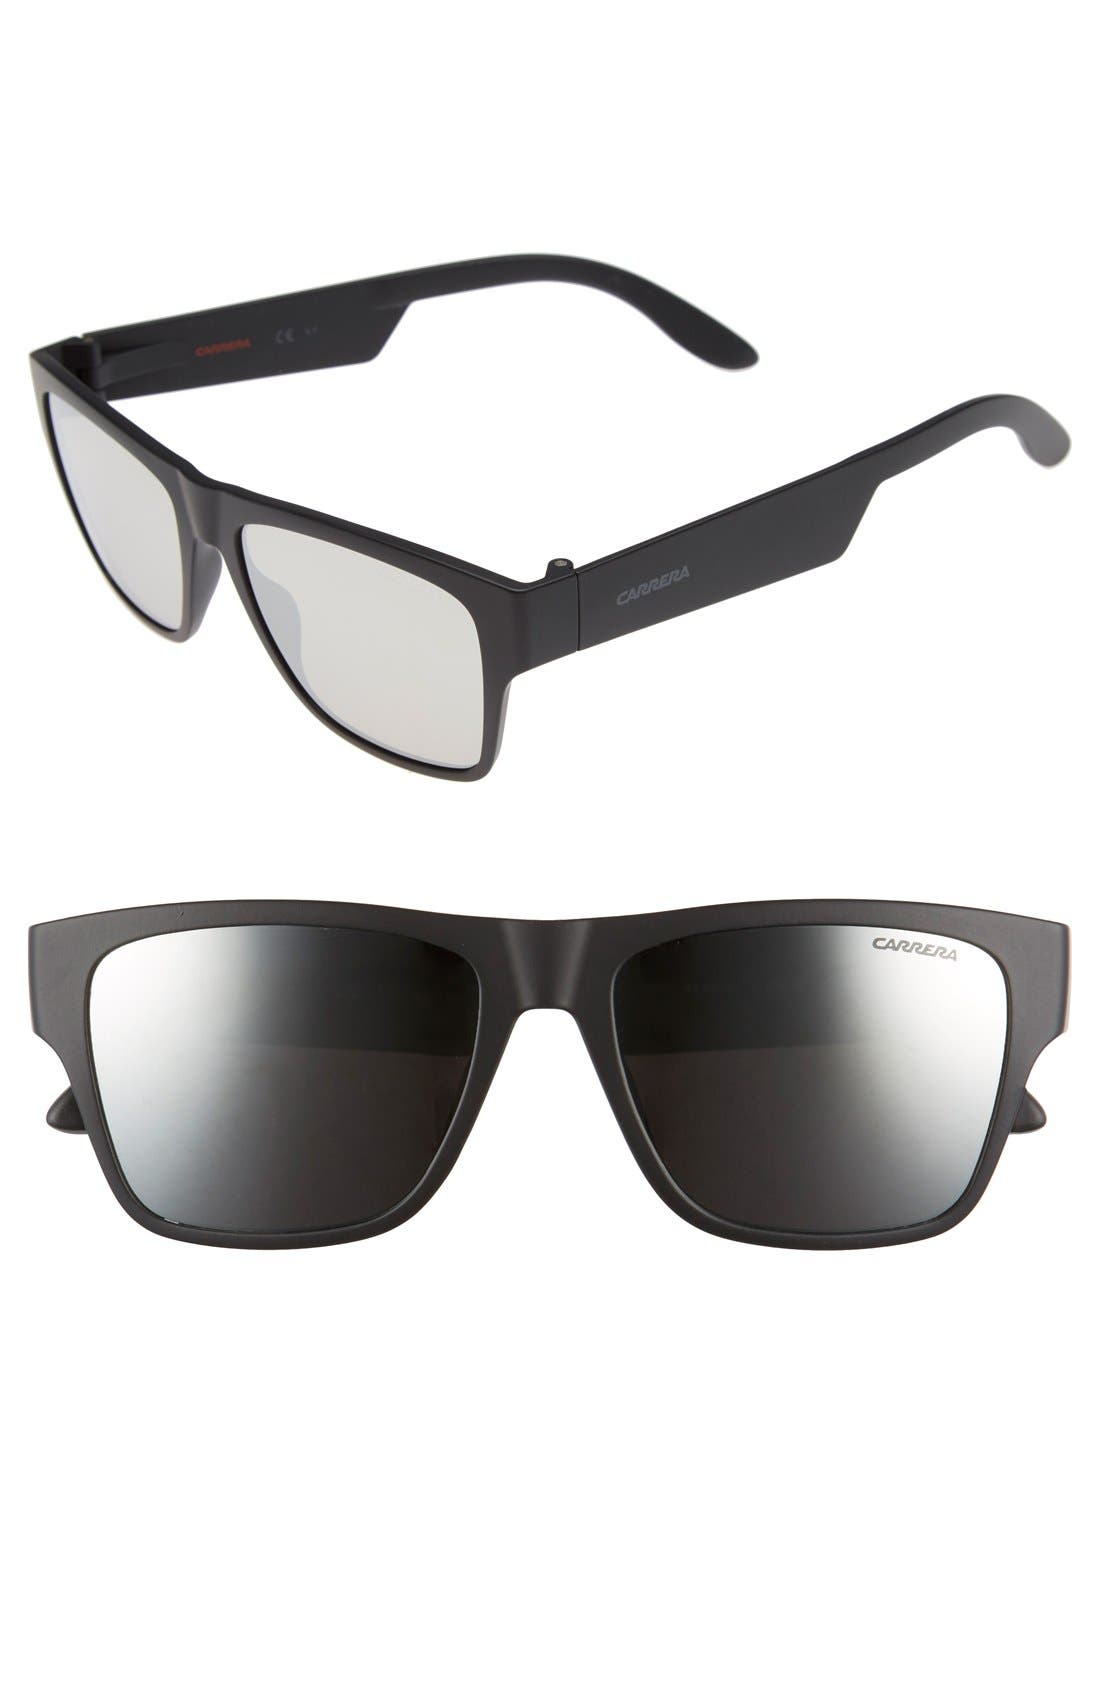 Main Image - Carrera Eyewear 55mm Retro Sunglasses